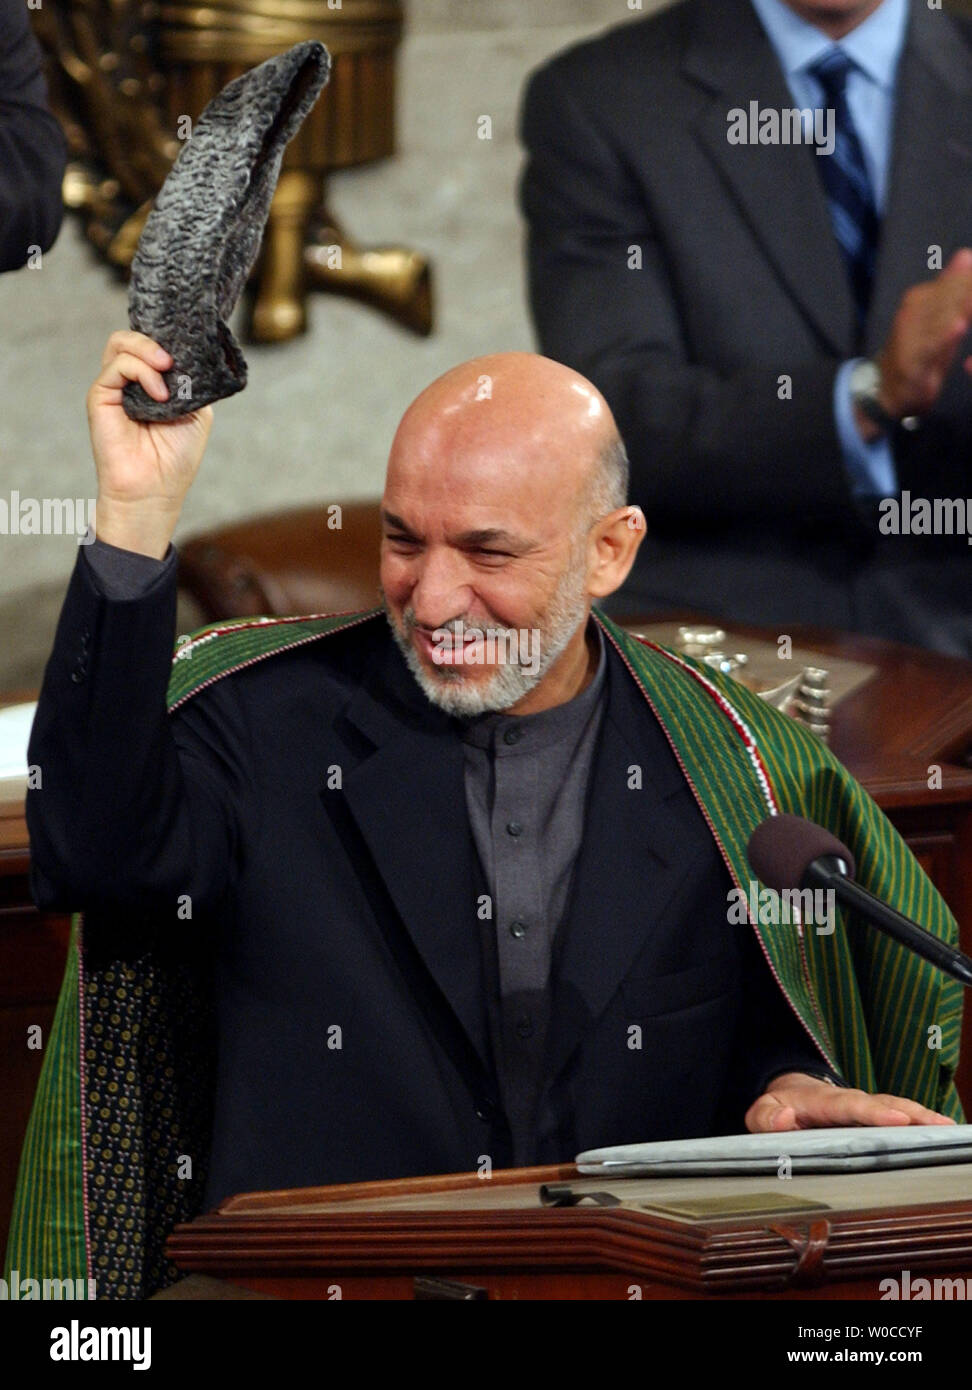 2004 Karzai Stock Photos & 2004 Karzai Stock Images - Alamy